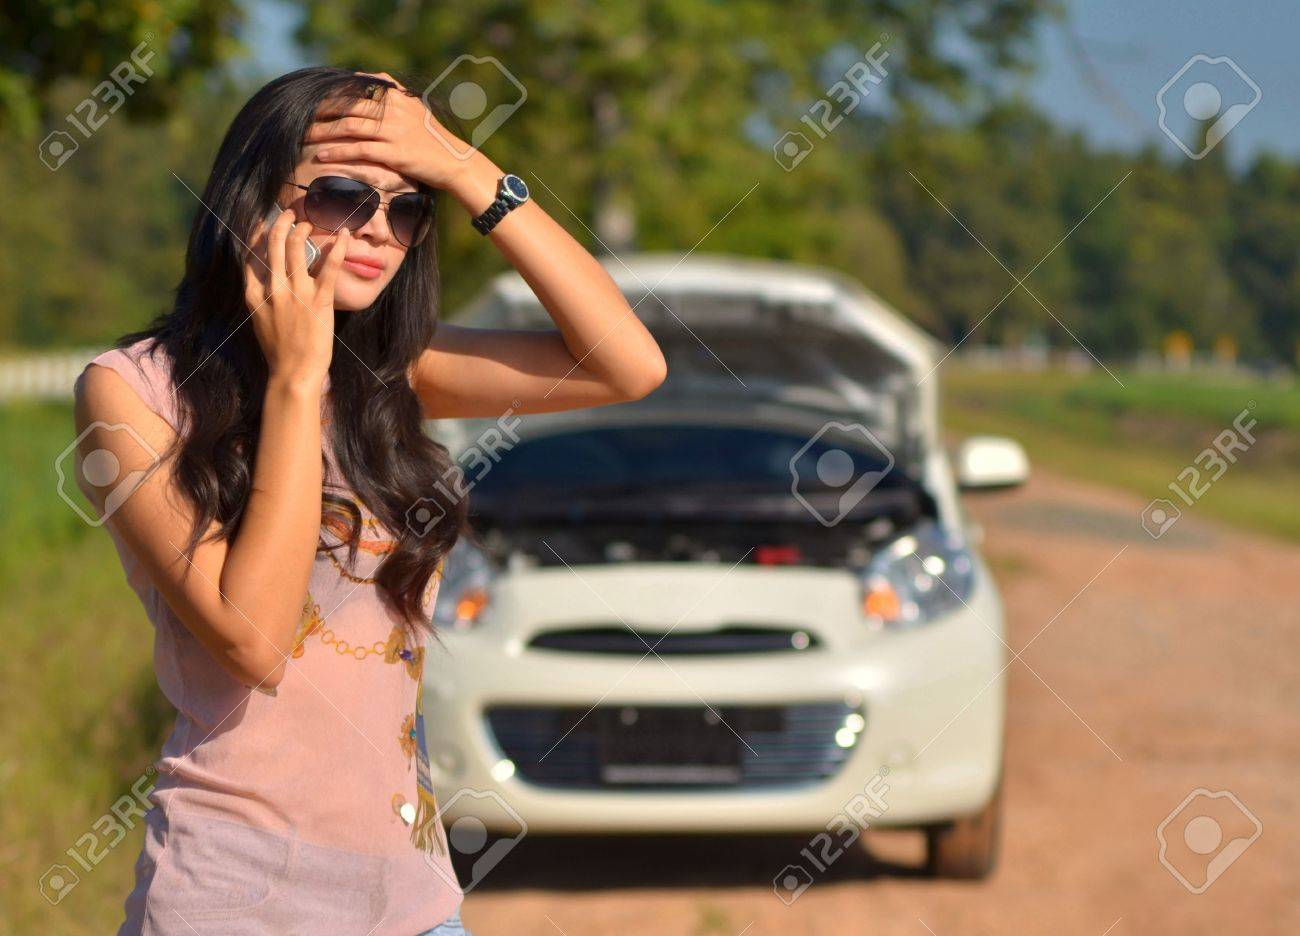 Car Broke Down >> A Woman Calls For Assistance After Her Car Broke Down